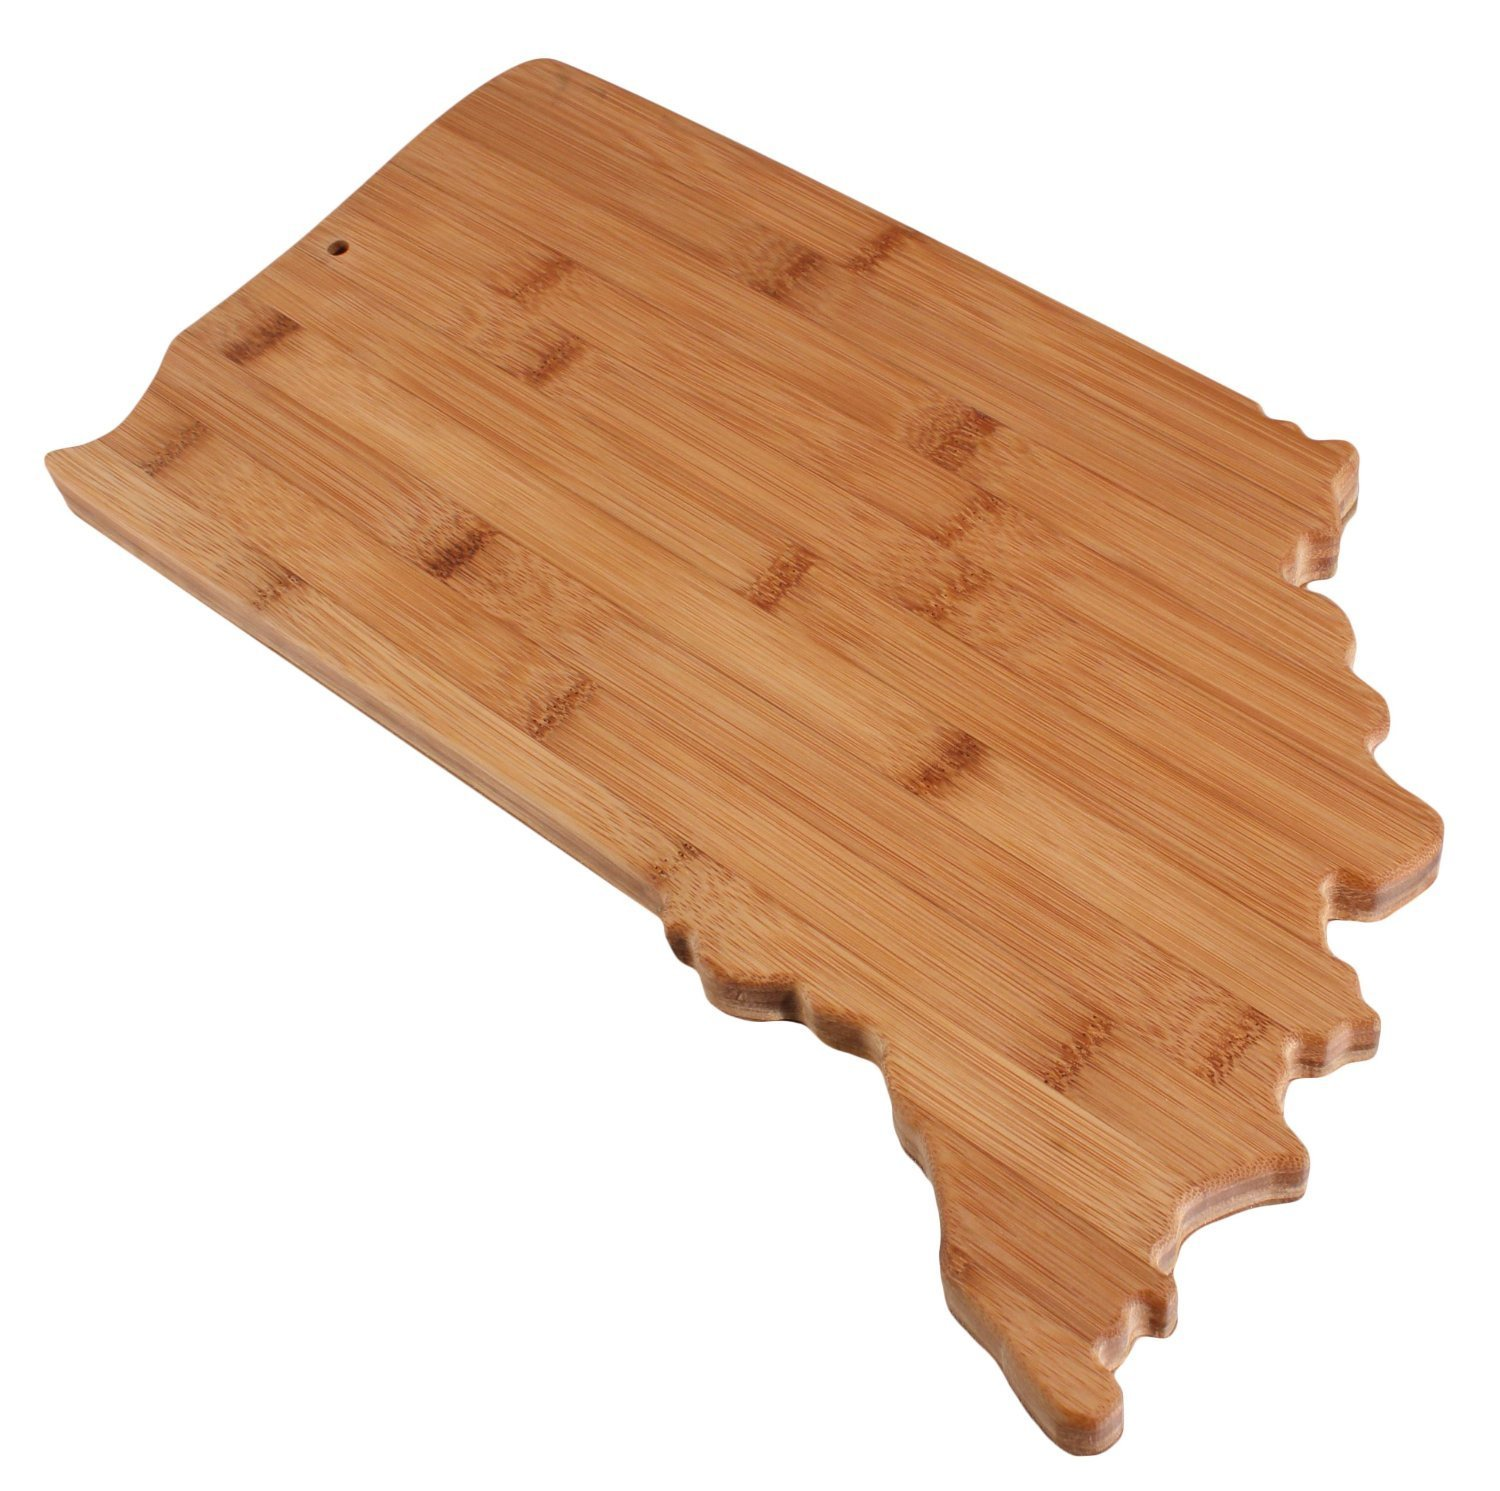 Real Bamboo Cutting and Serving Board, unique Indiana shaped board